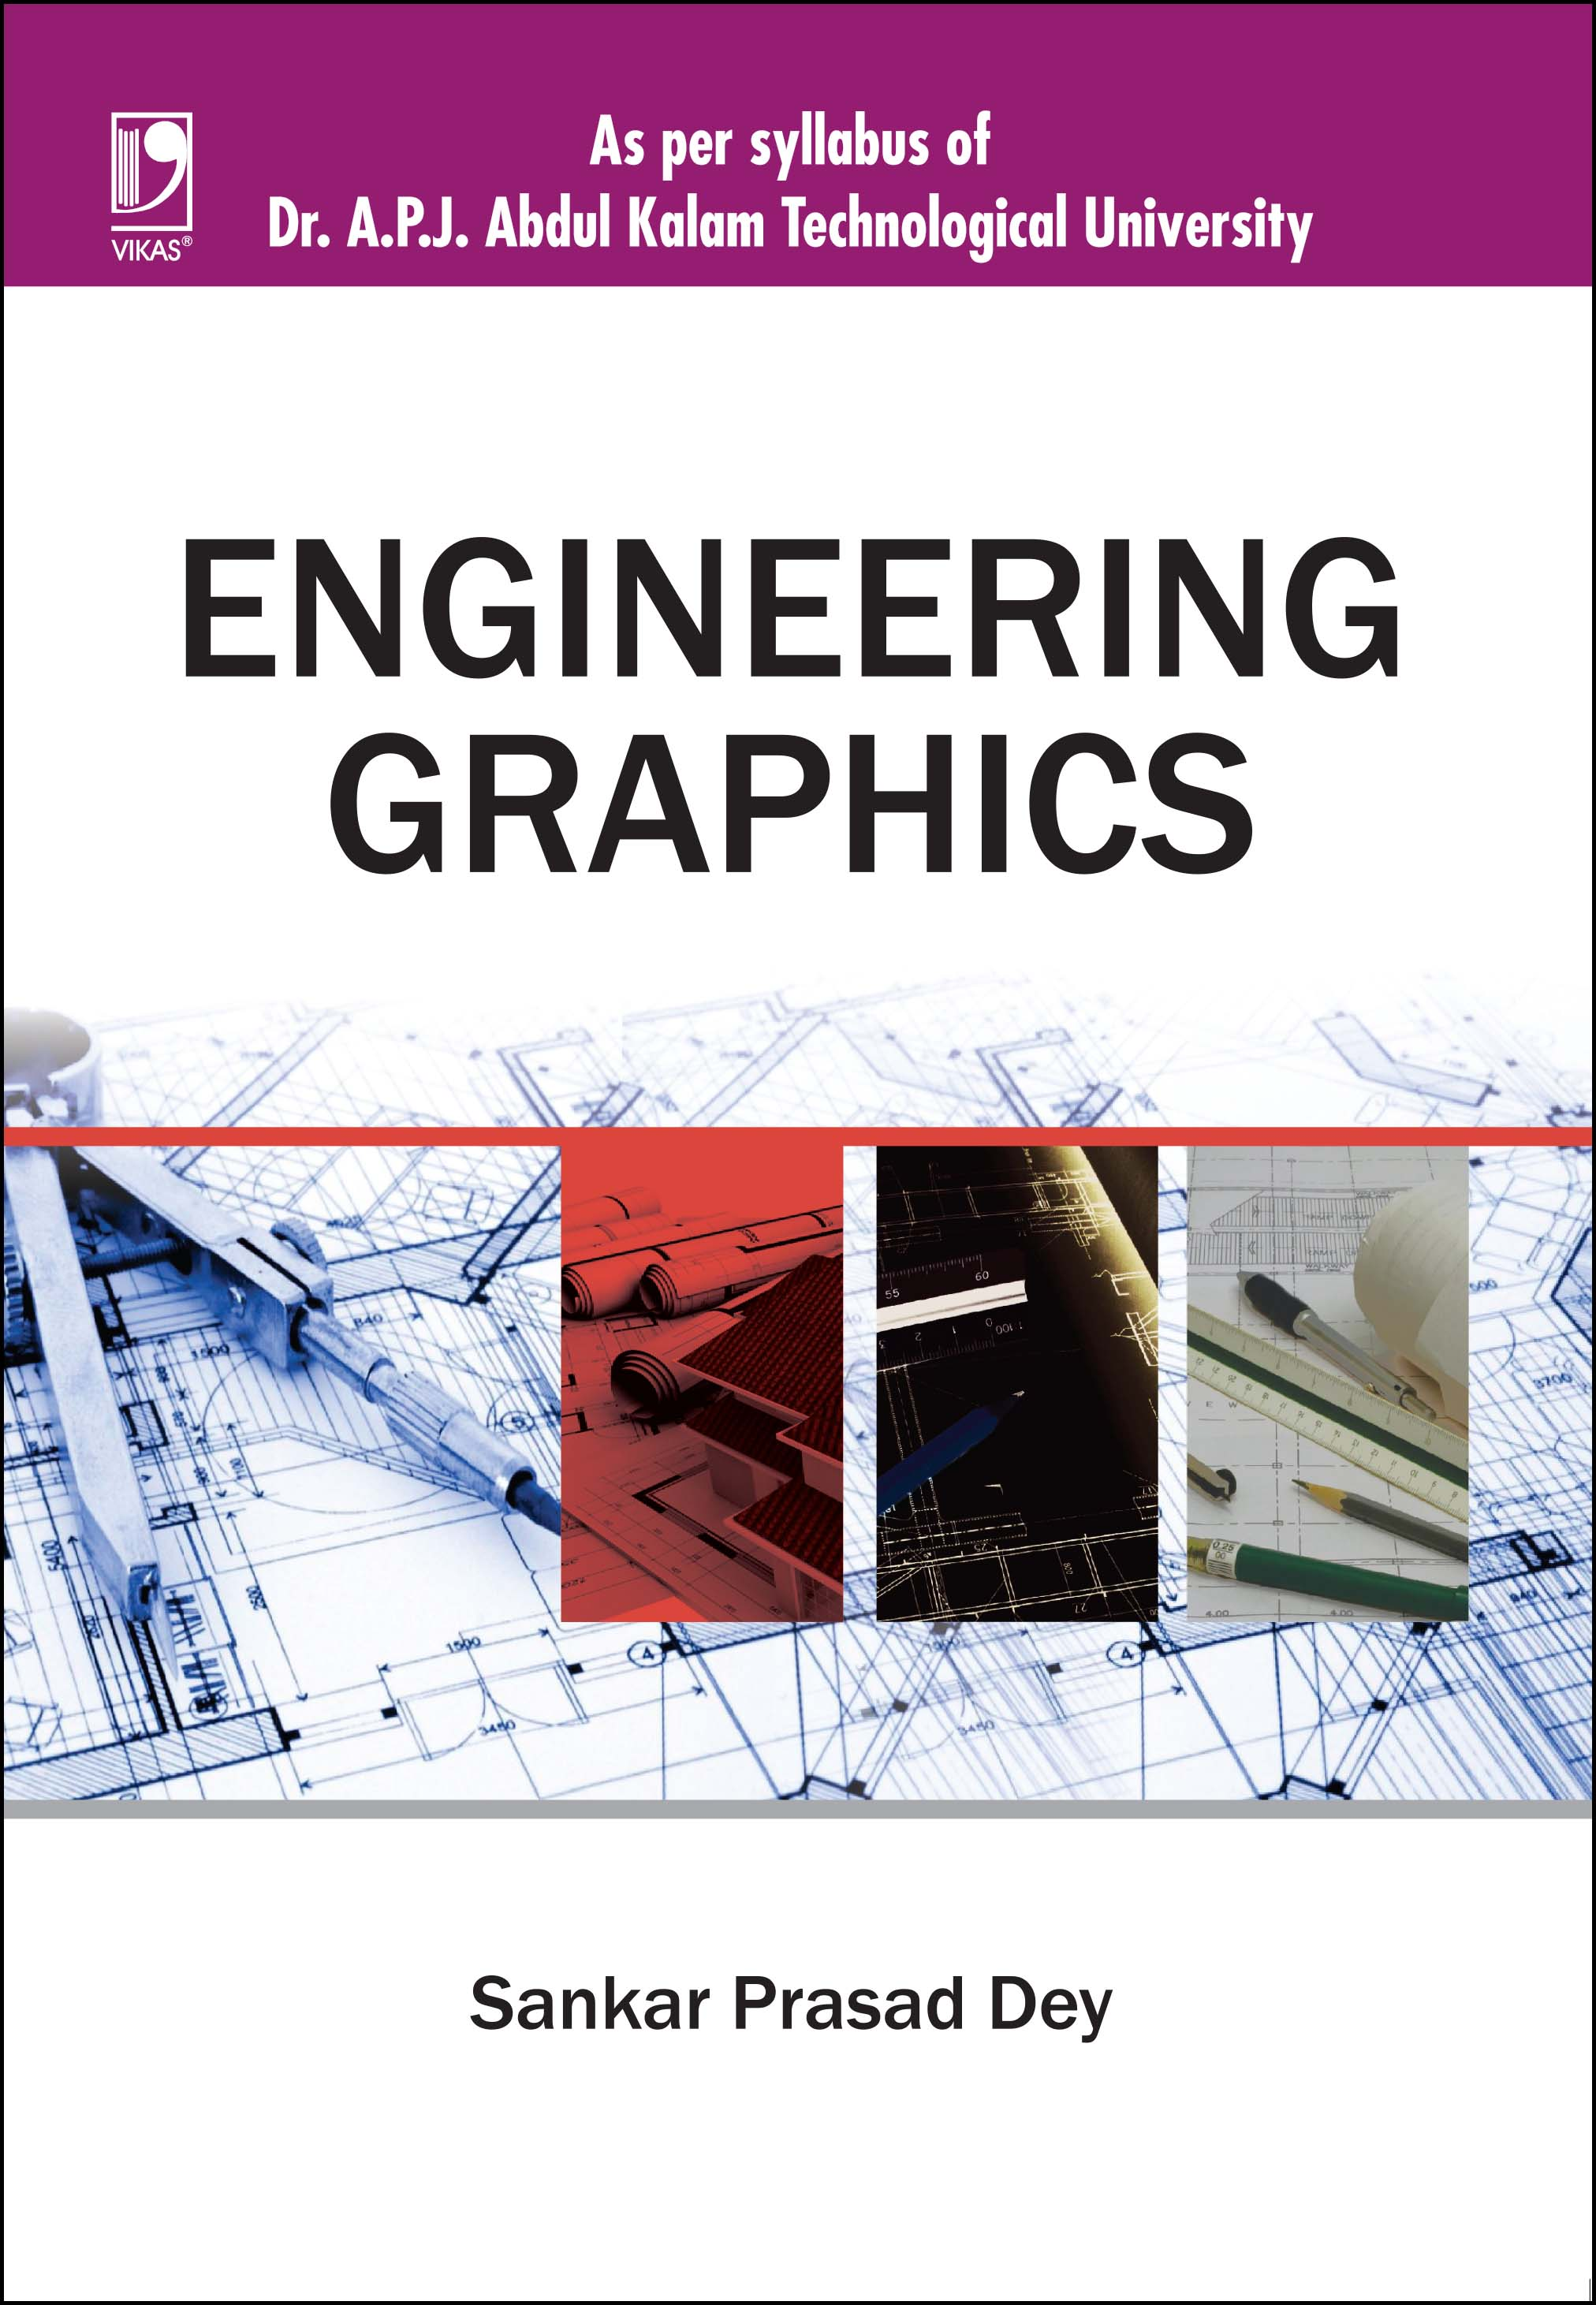 ENGINEERING GRAPHICS: (FOR DR. A.P.J. ABDUL KALAM TECHNOLOGICAL UNIVERSITY)